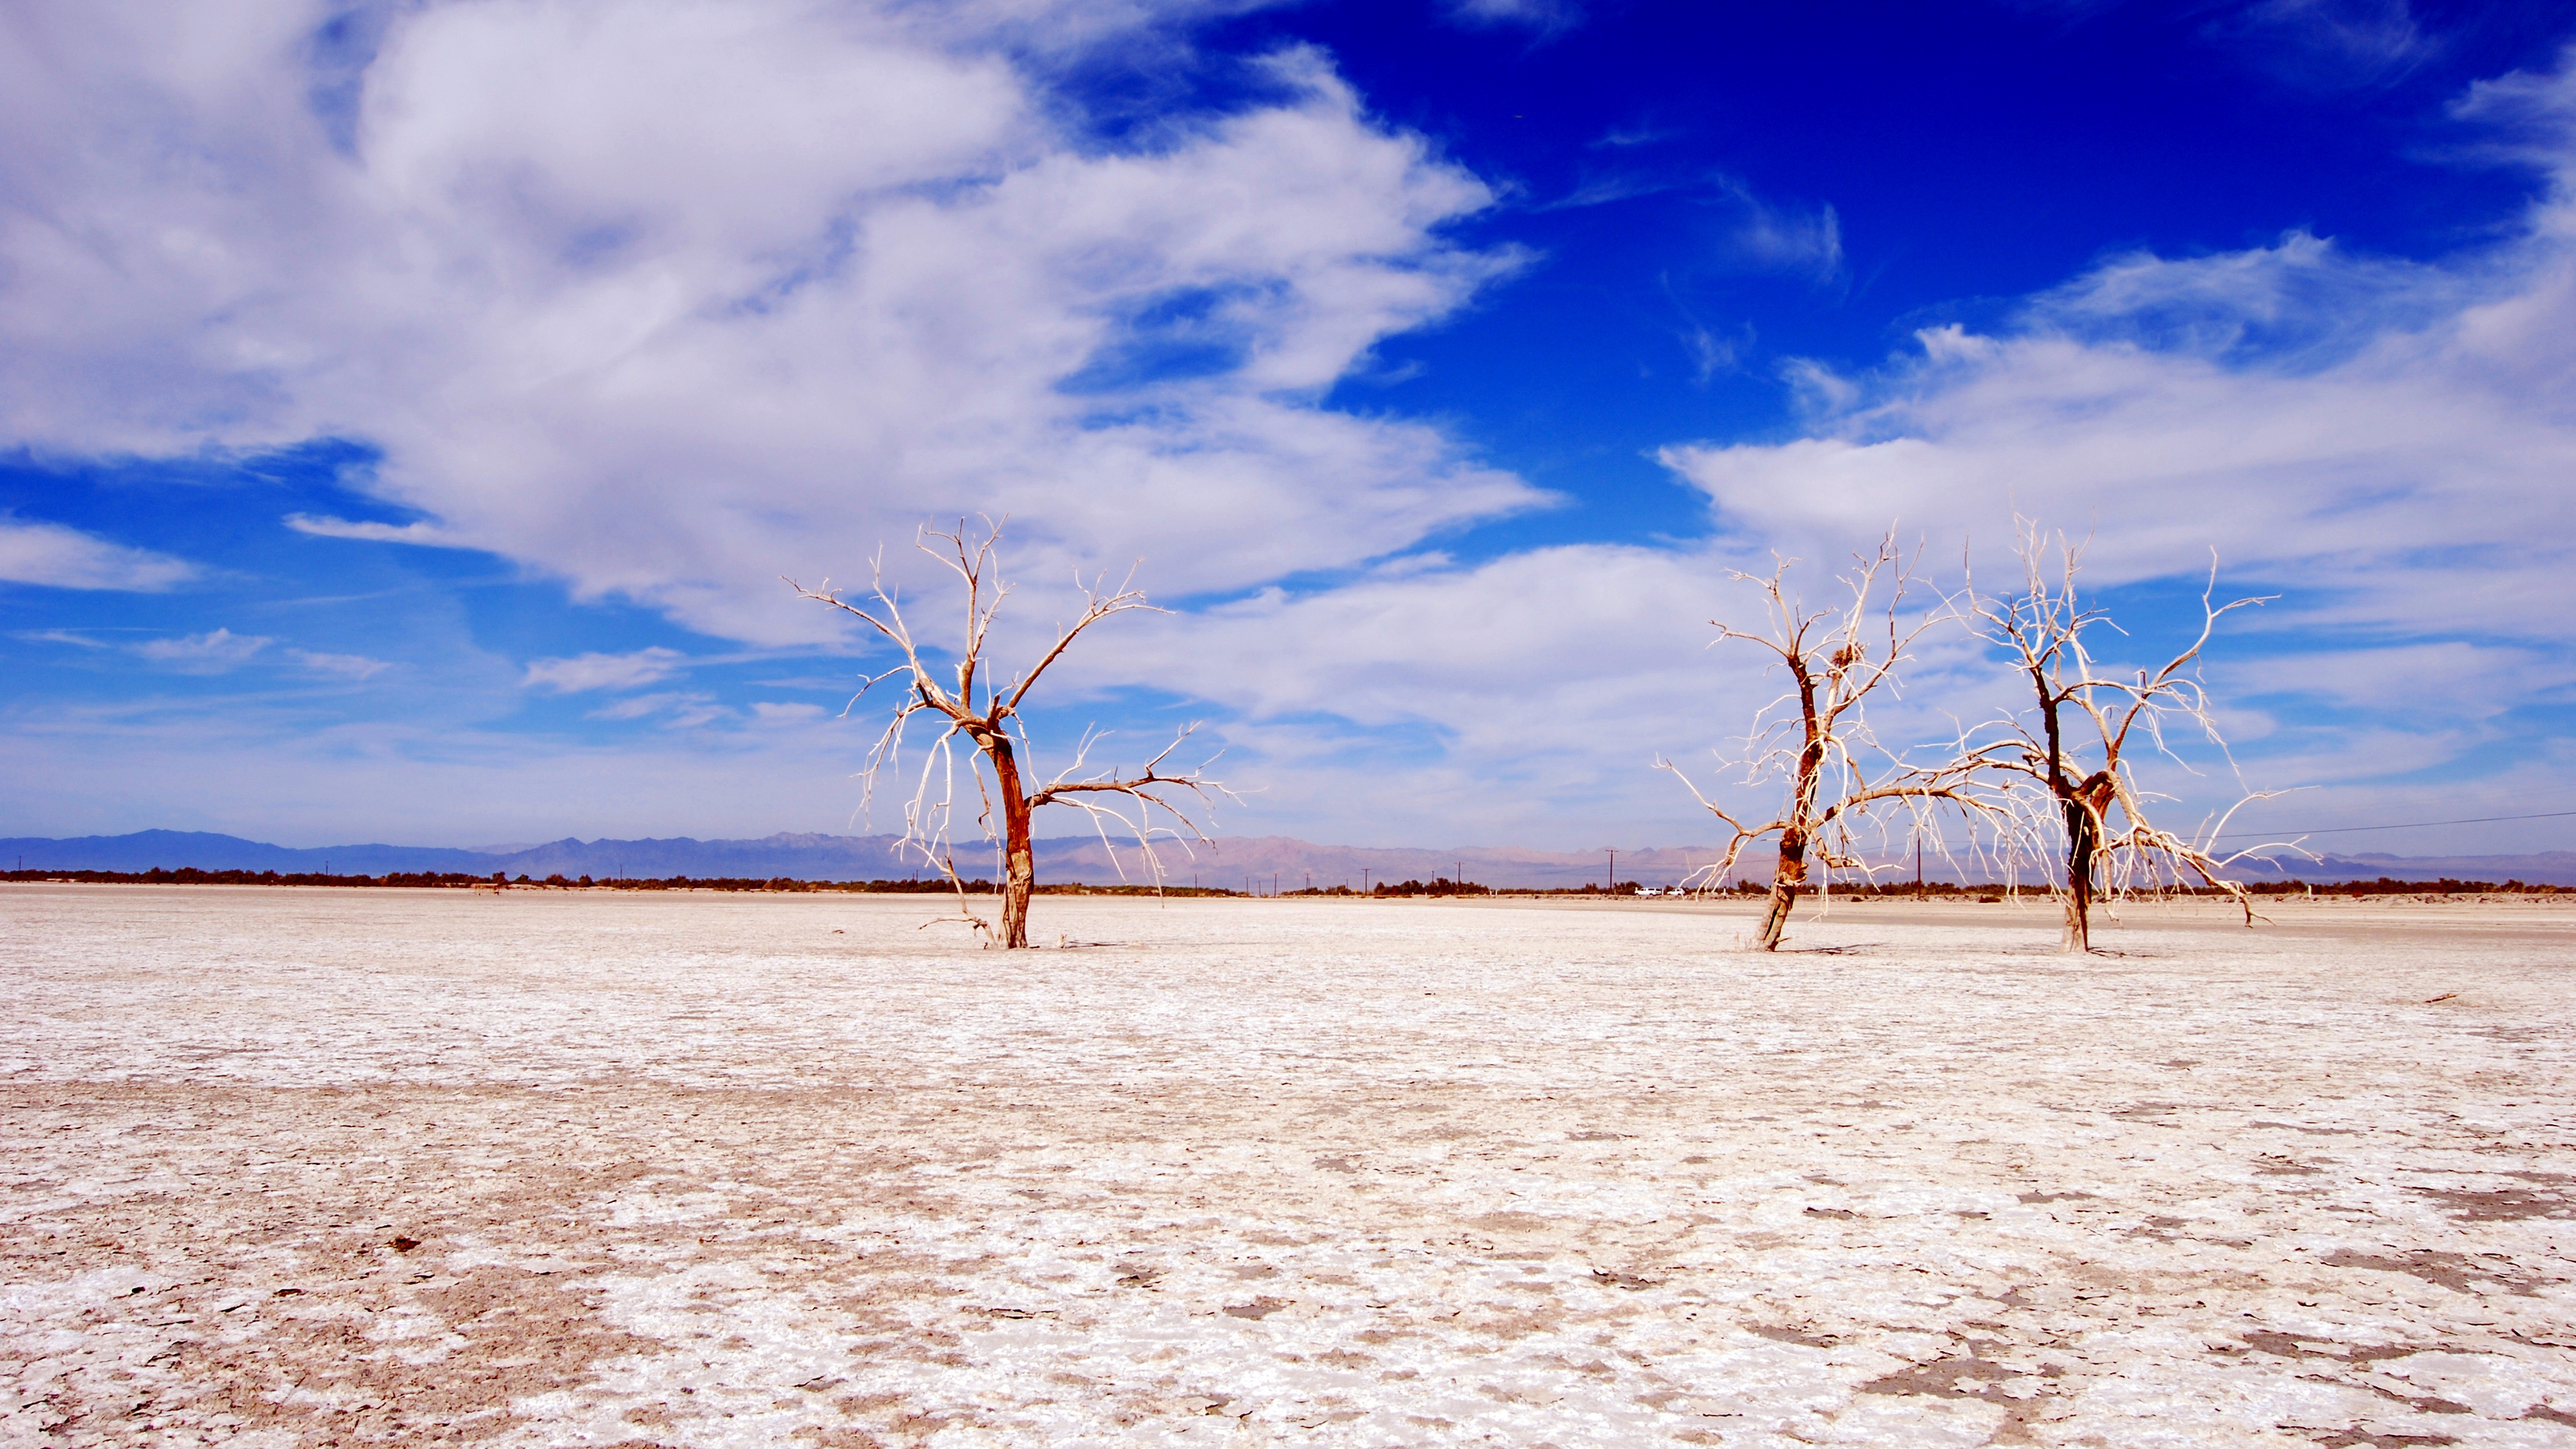 trees desert branches sky clouds dry lake 4k 1541117293 - trees, desert, branches, sky, clouds, dry lake 4k - Trees, Desert, branches